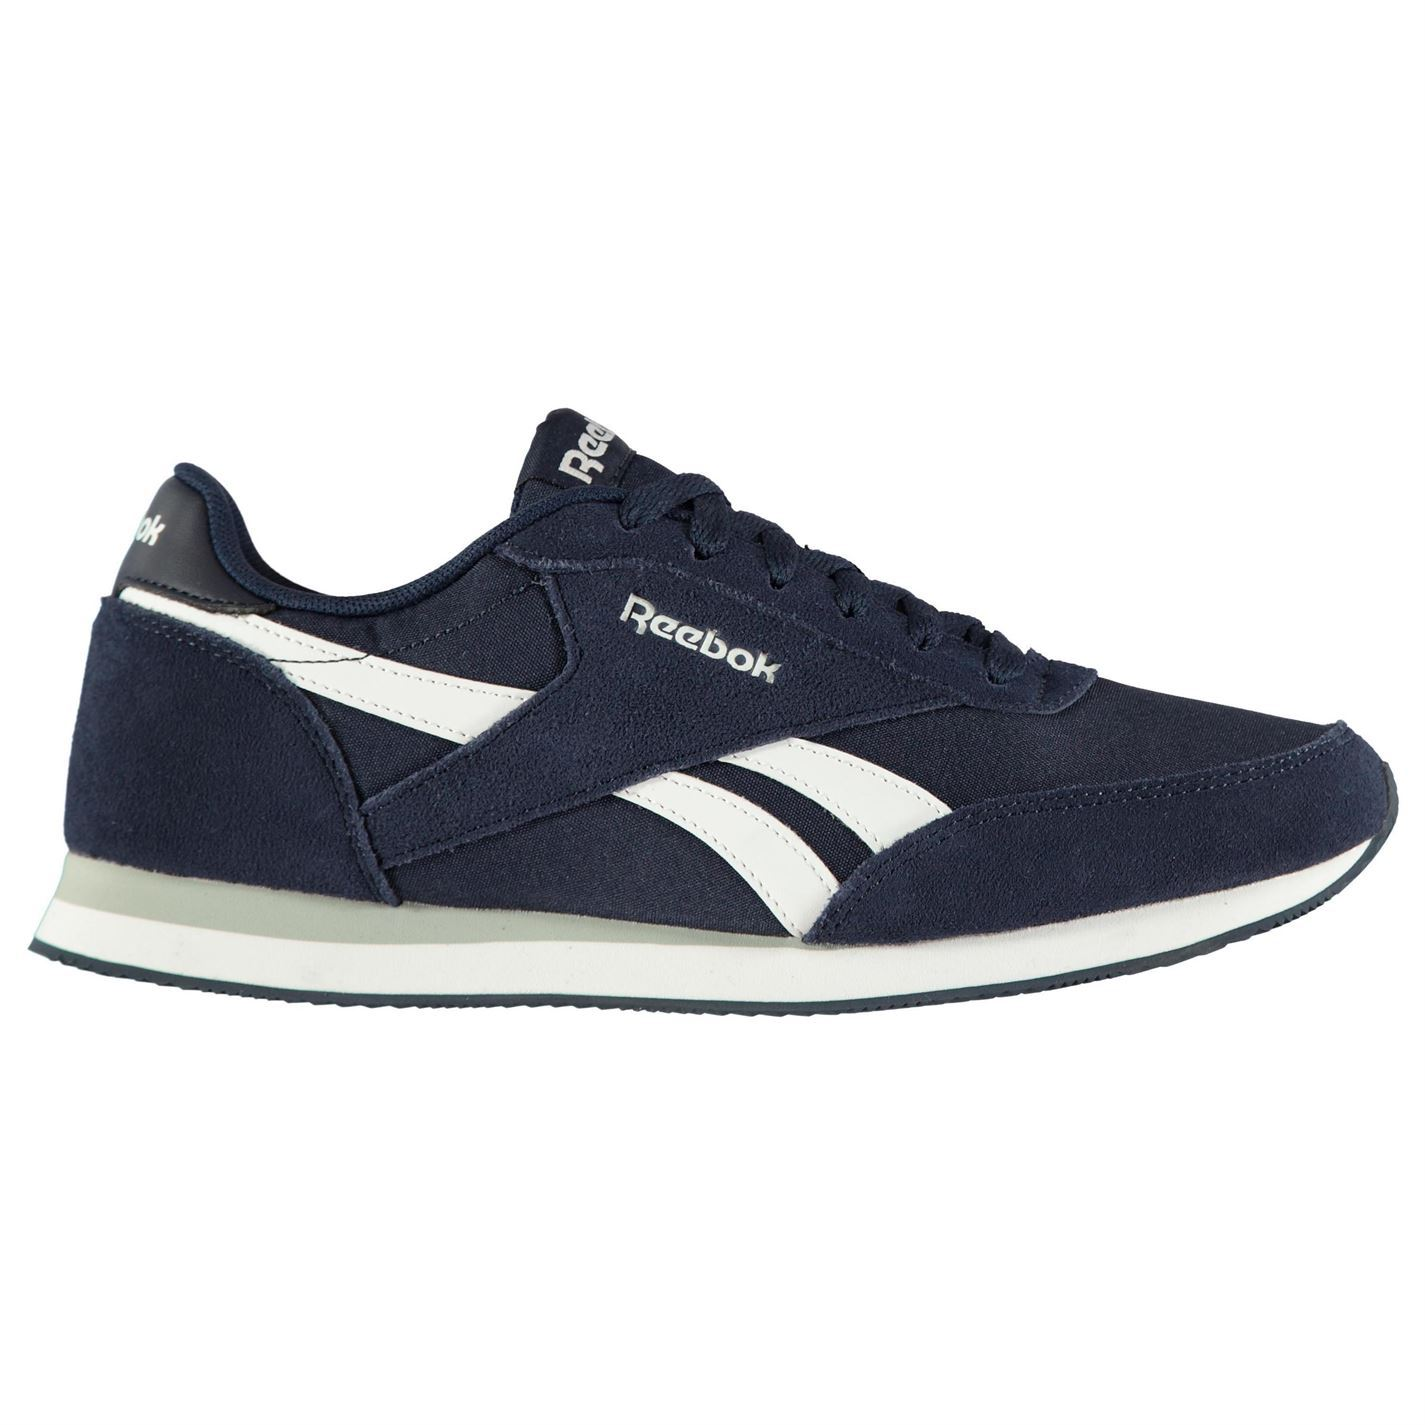 929a468436fe8b Details about reebok classic jogger trainers mens navy white sports shoes  sneakers jpg 1425x1425 Reebok classic